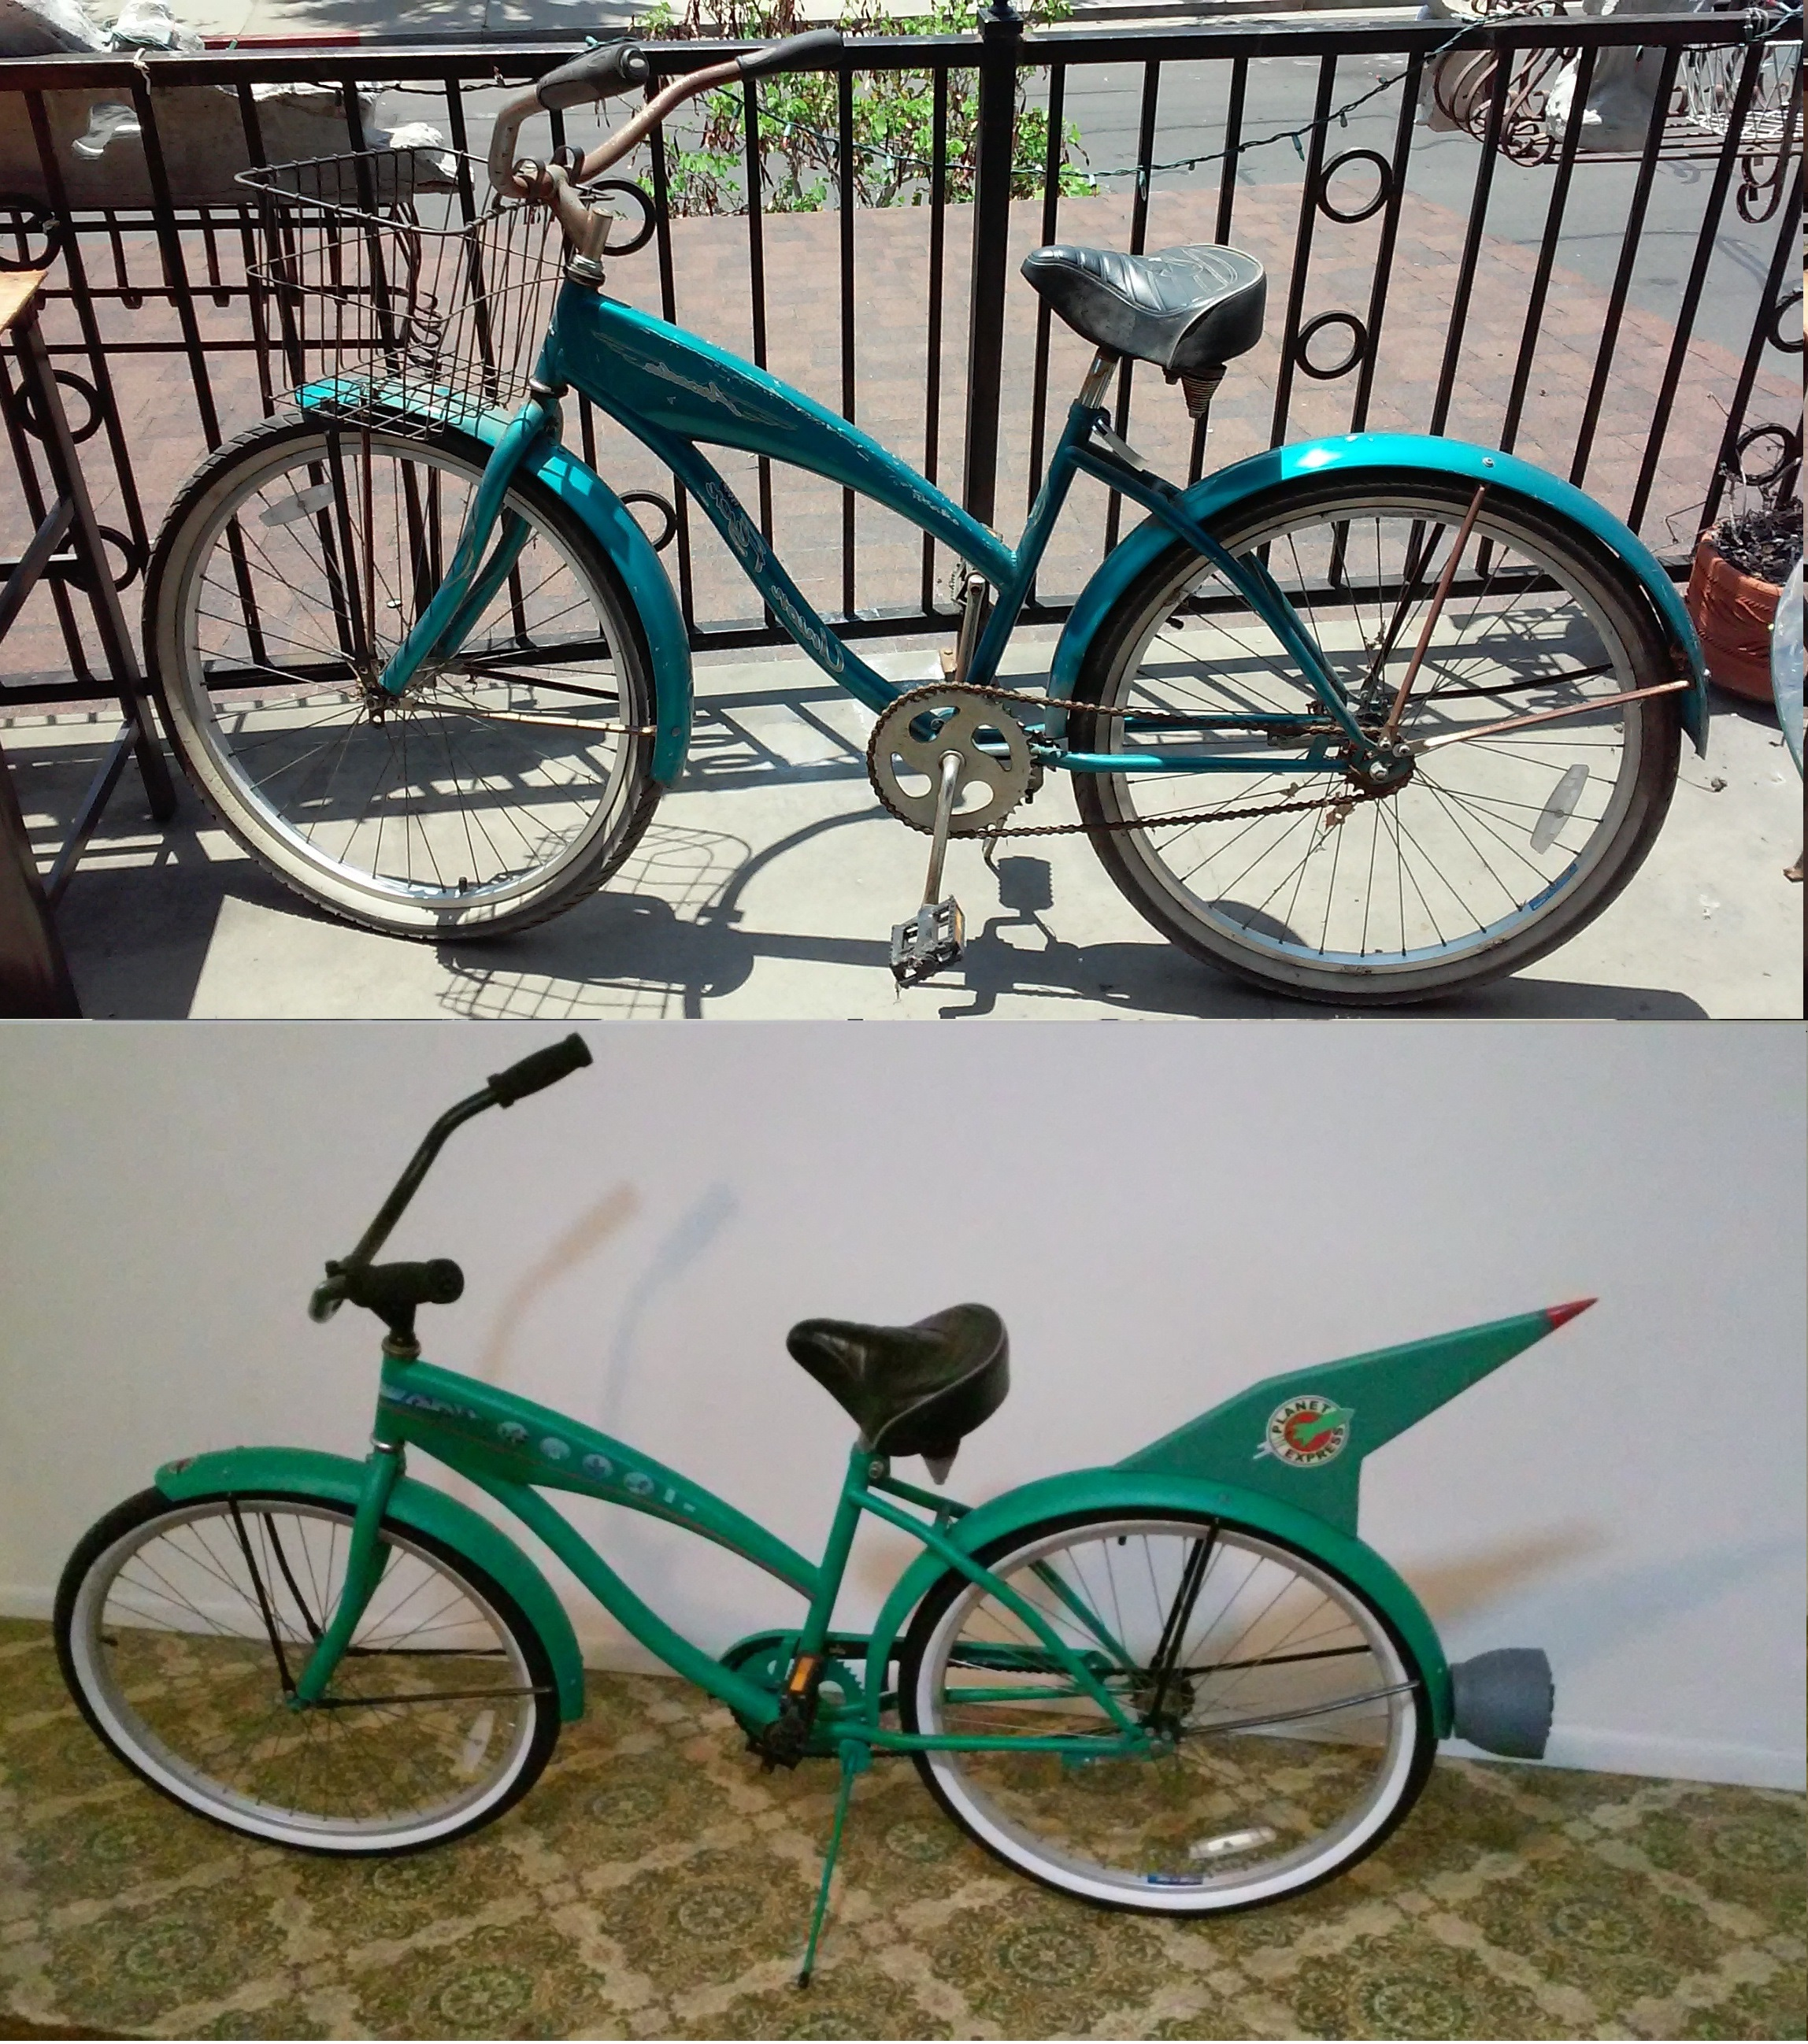 Found a beat up bike at the thrift store and gave it a makeover.